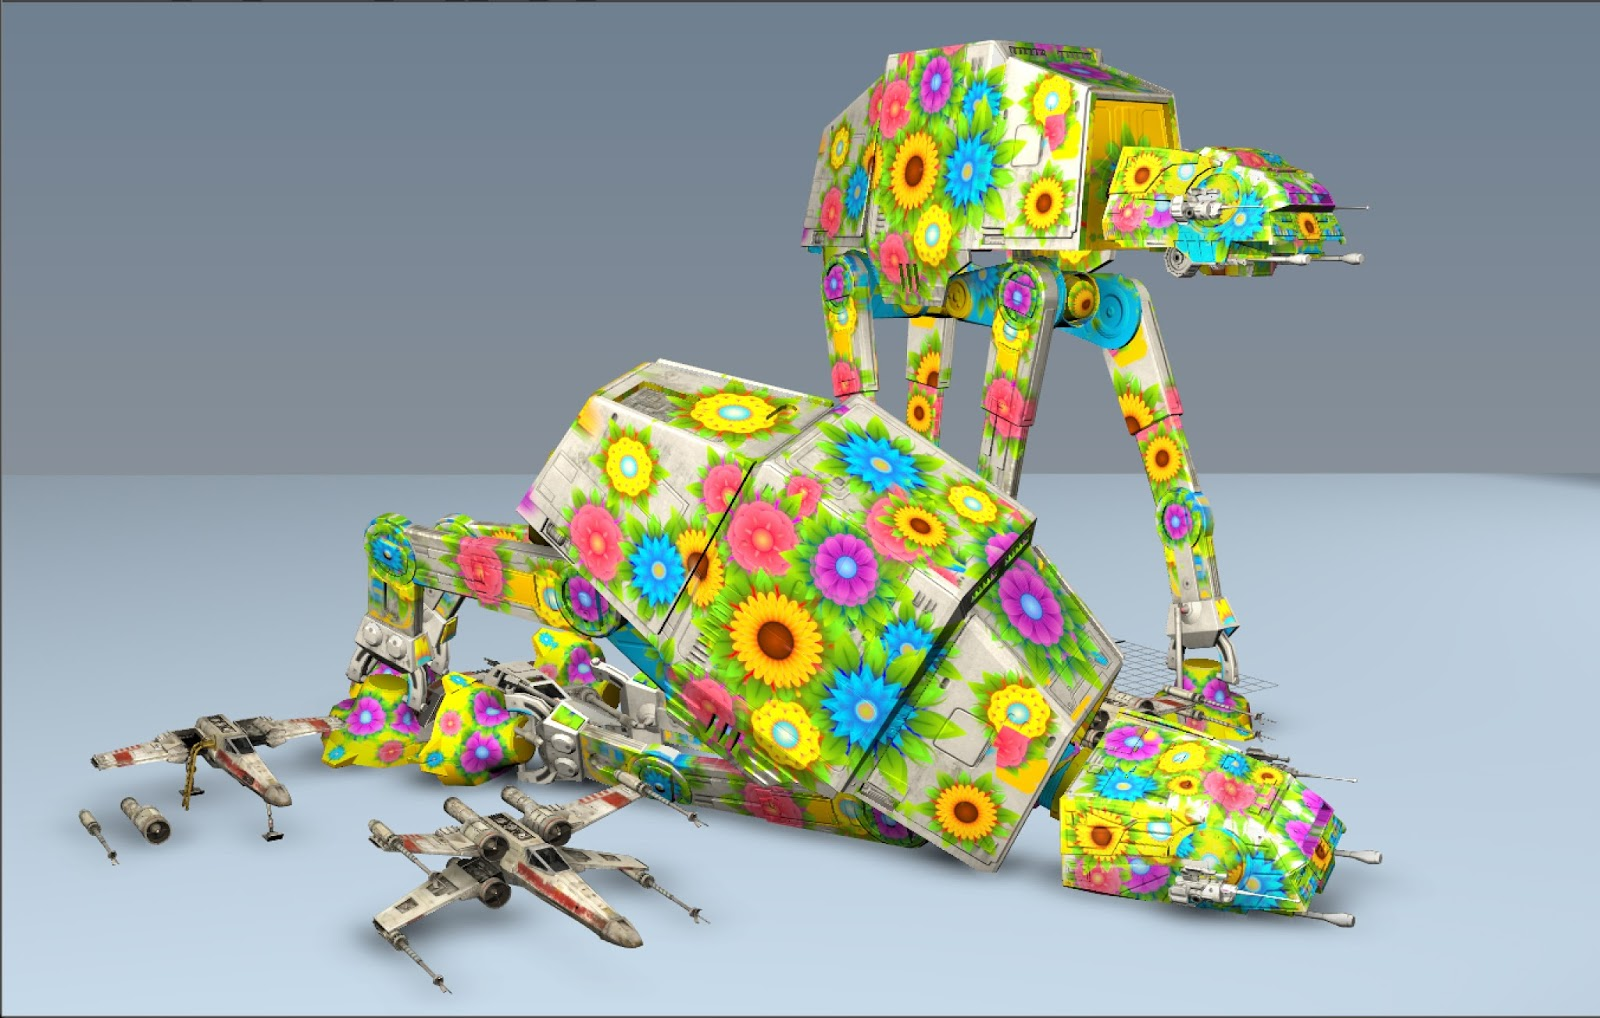 Flowery 3D AT-ATs grazing